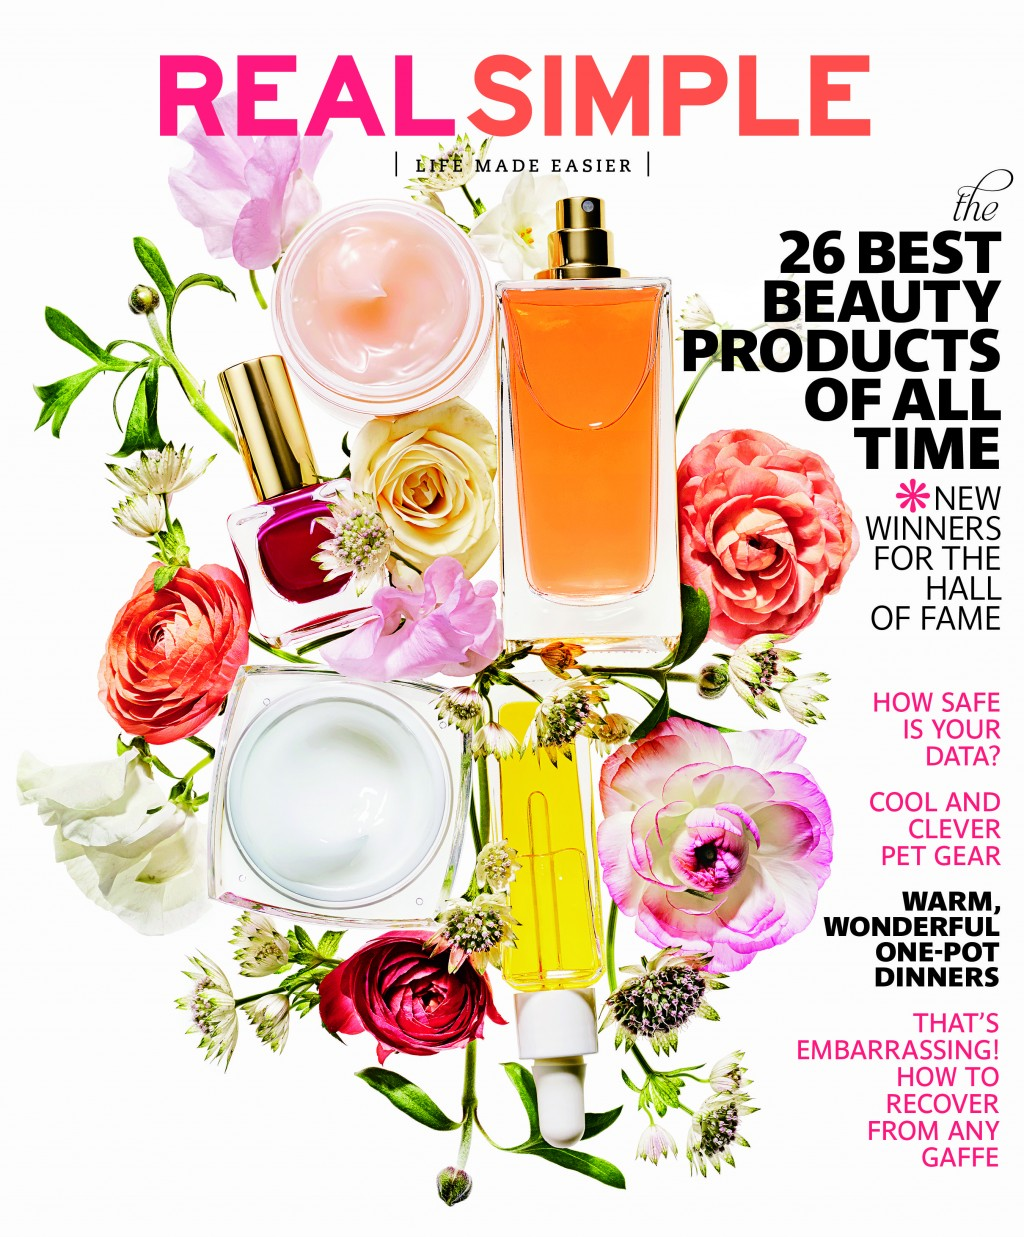 022 Real Simple Essay Contest Example Frightening Magazine Writing Life 2017 Large